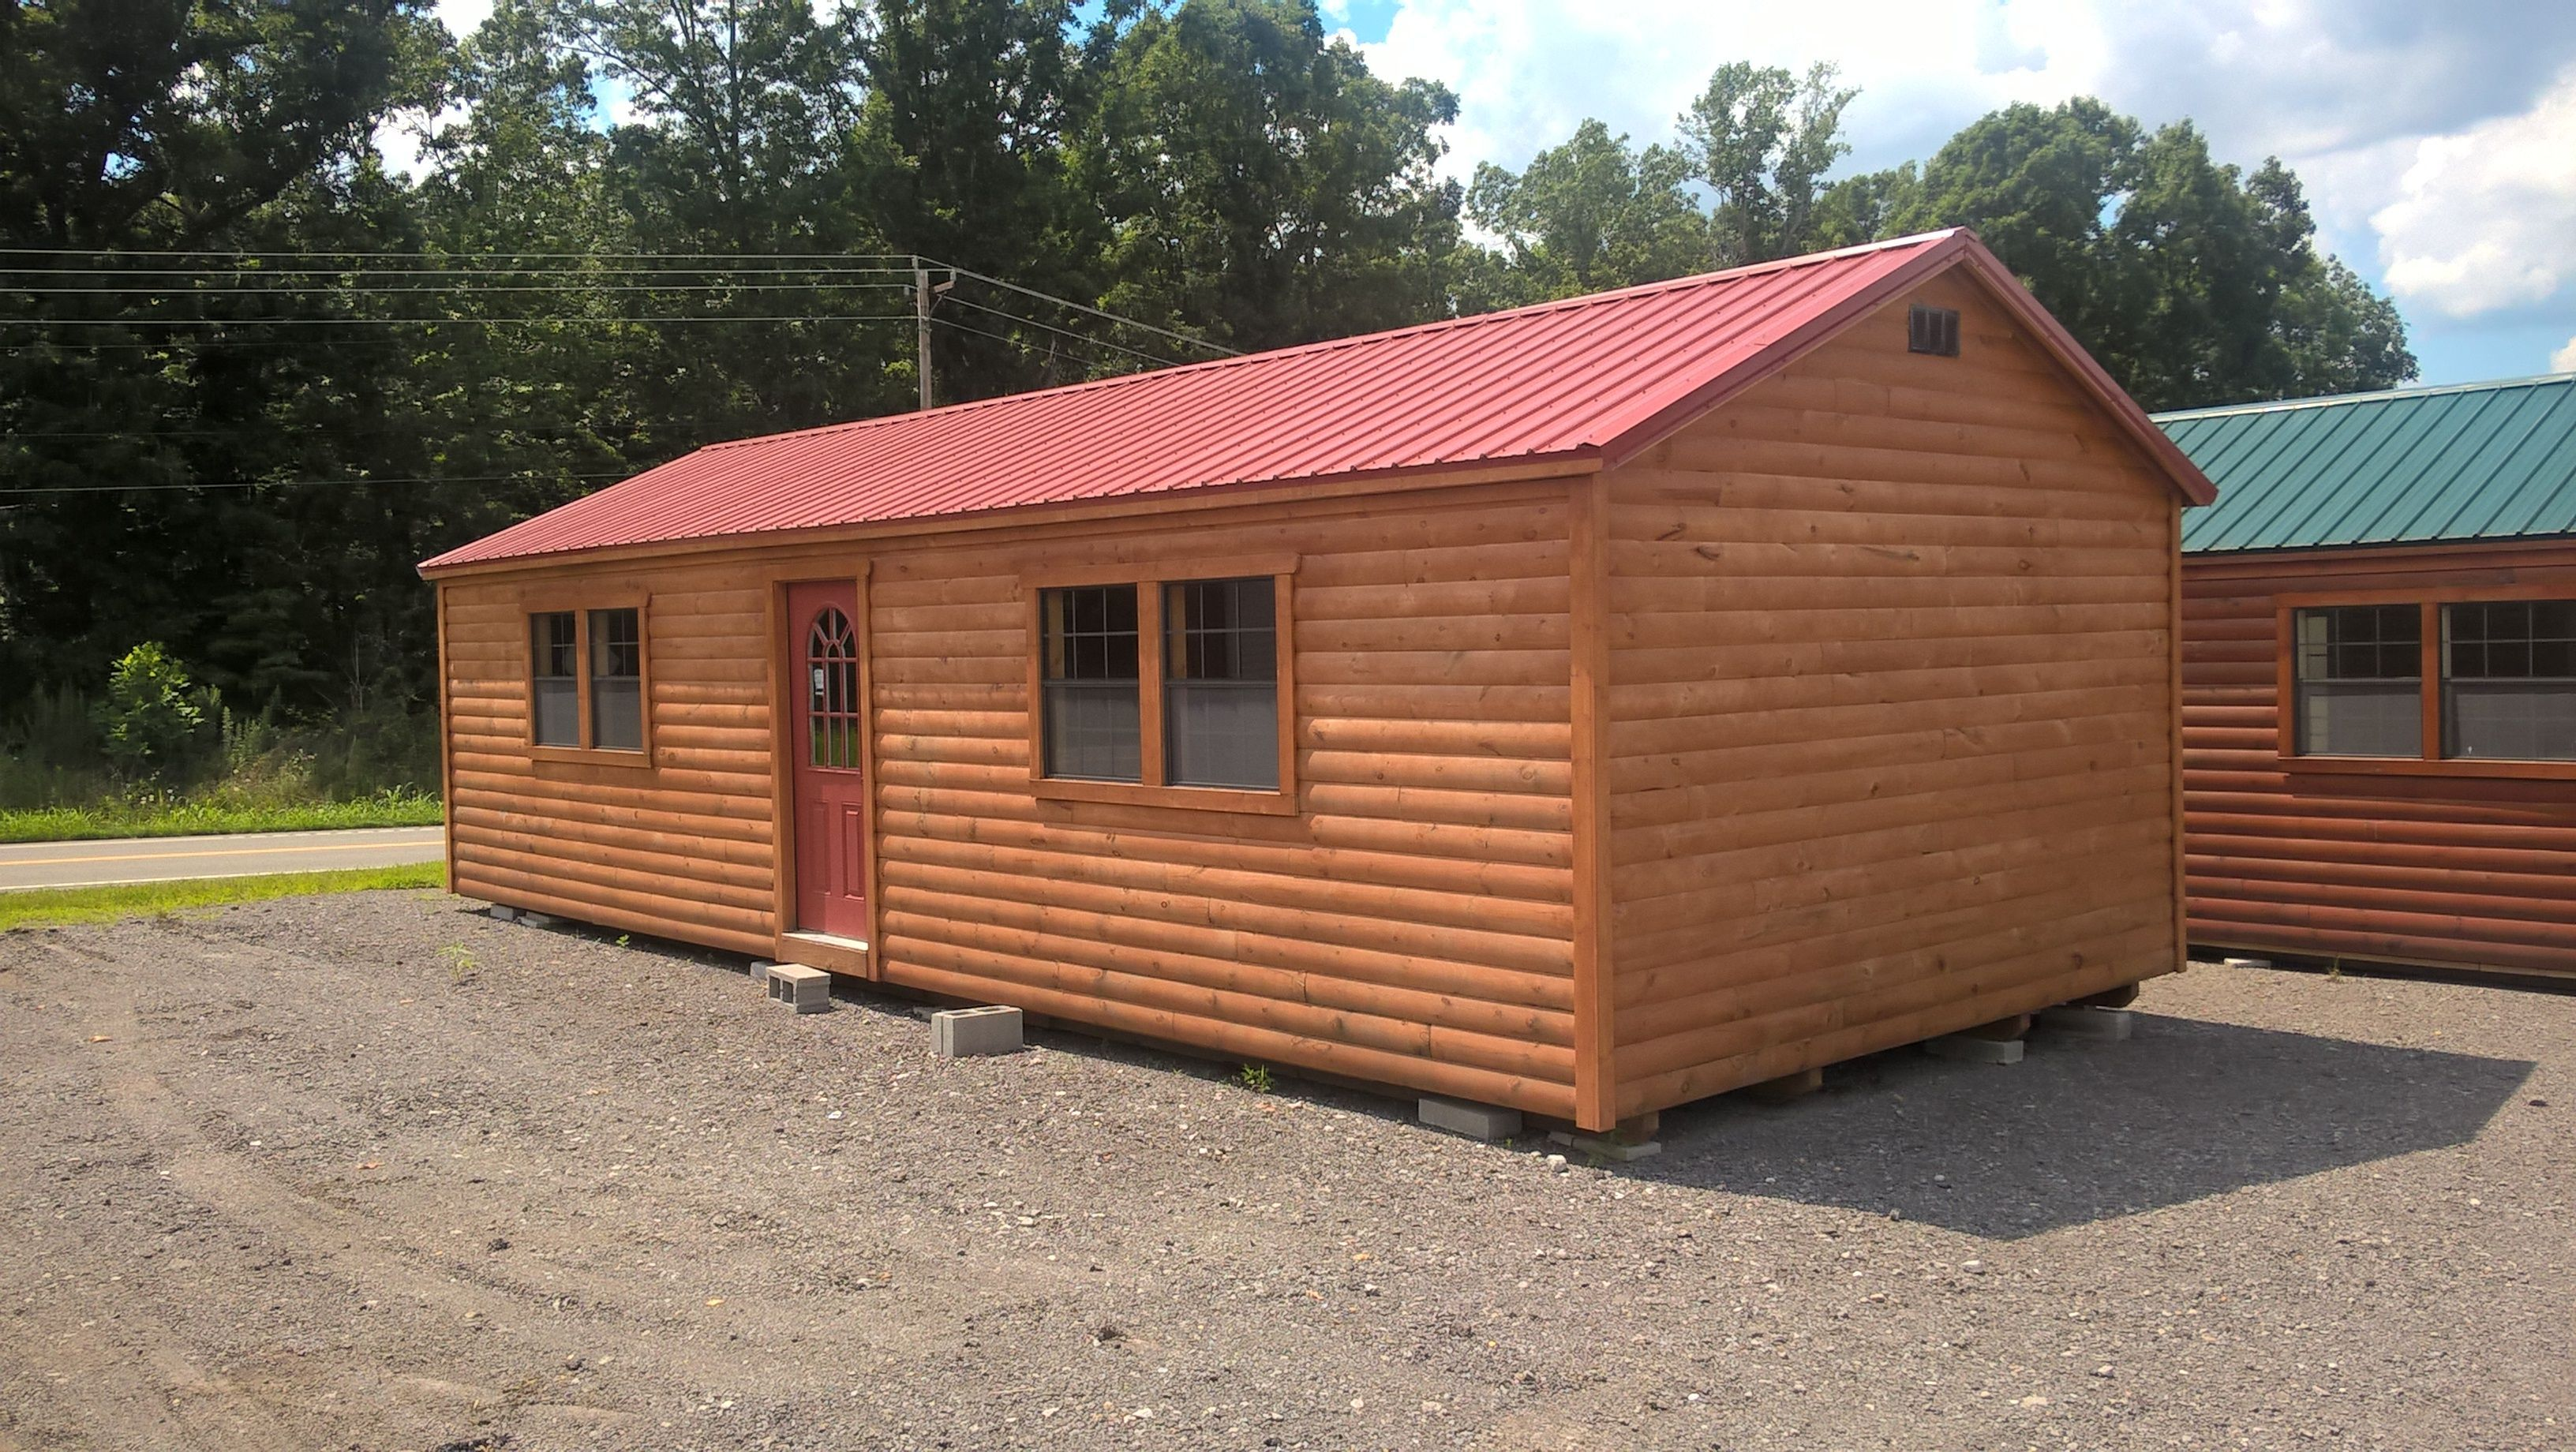 country with portable cottage cabins storage there outbuidings s for or choice the sheds cco guest log great has rent porch perfect comes to and own buildings cabin is over a area weekend